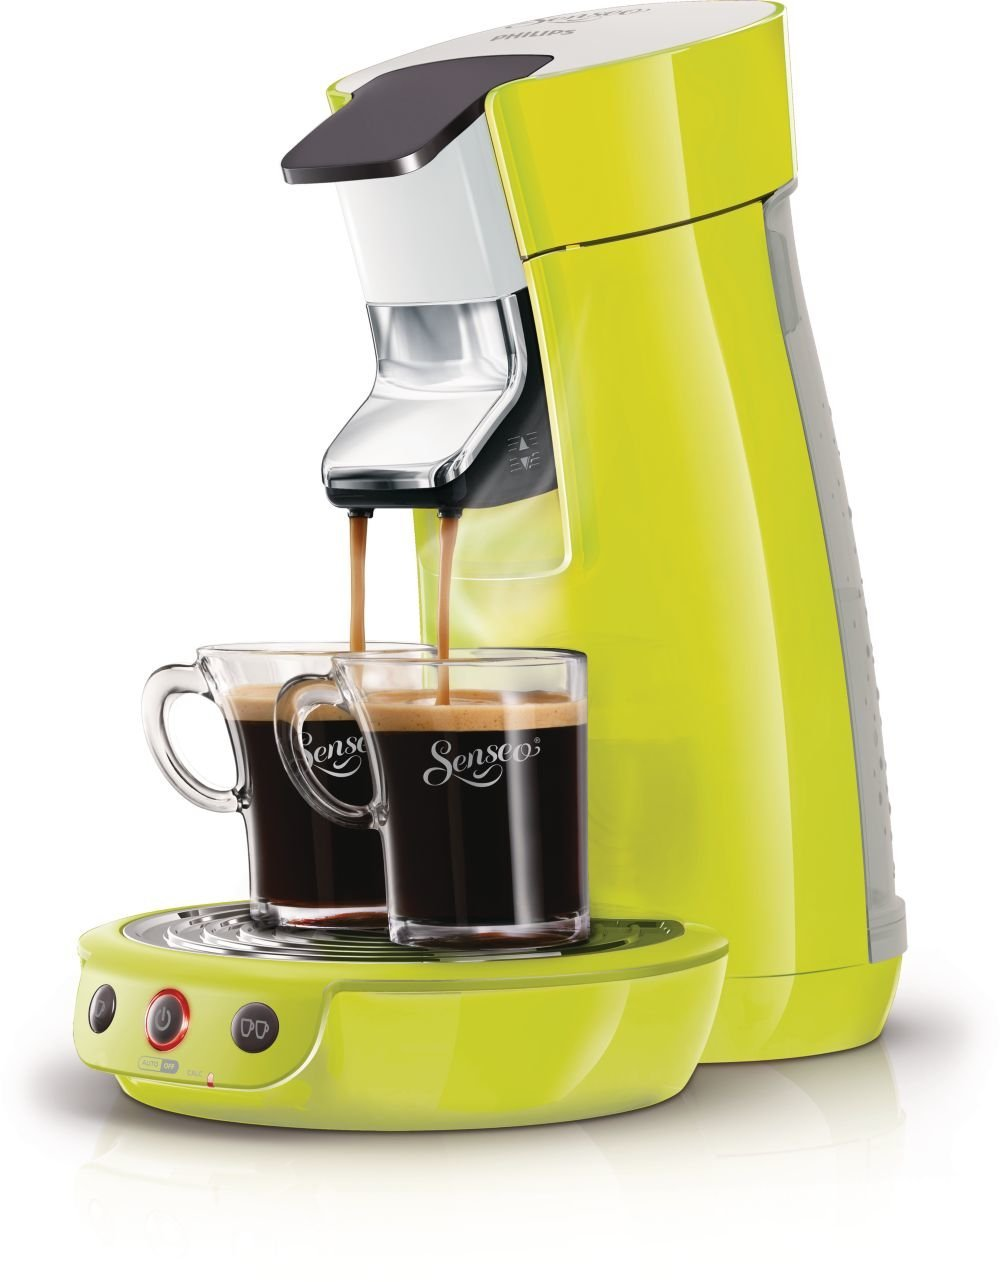 Senseo Kaffeemaschine Aktion : philips senseo r hd7825 10 viva caf in sizzling lime ~ Watch28wear.com Haus und Dekorationen